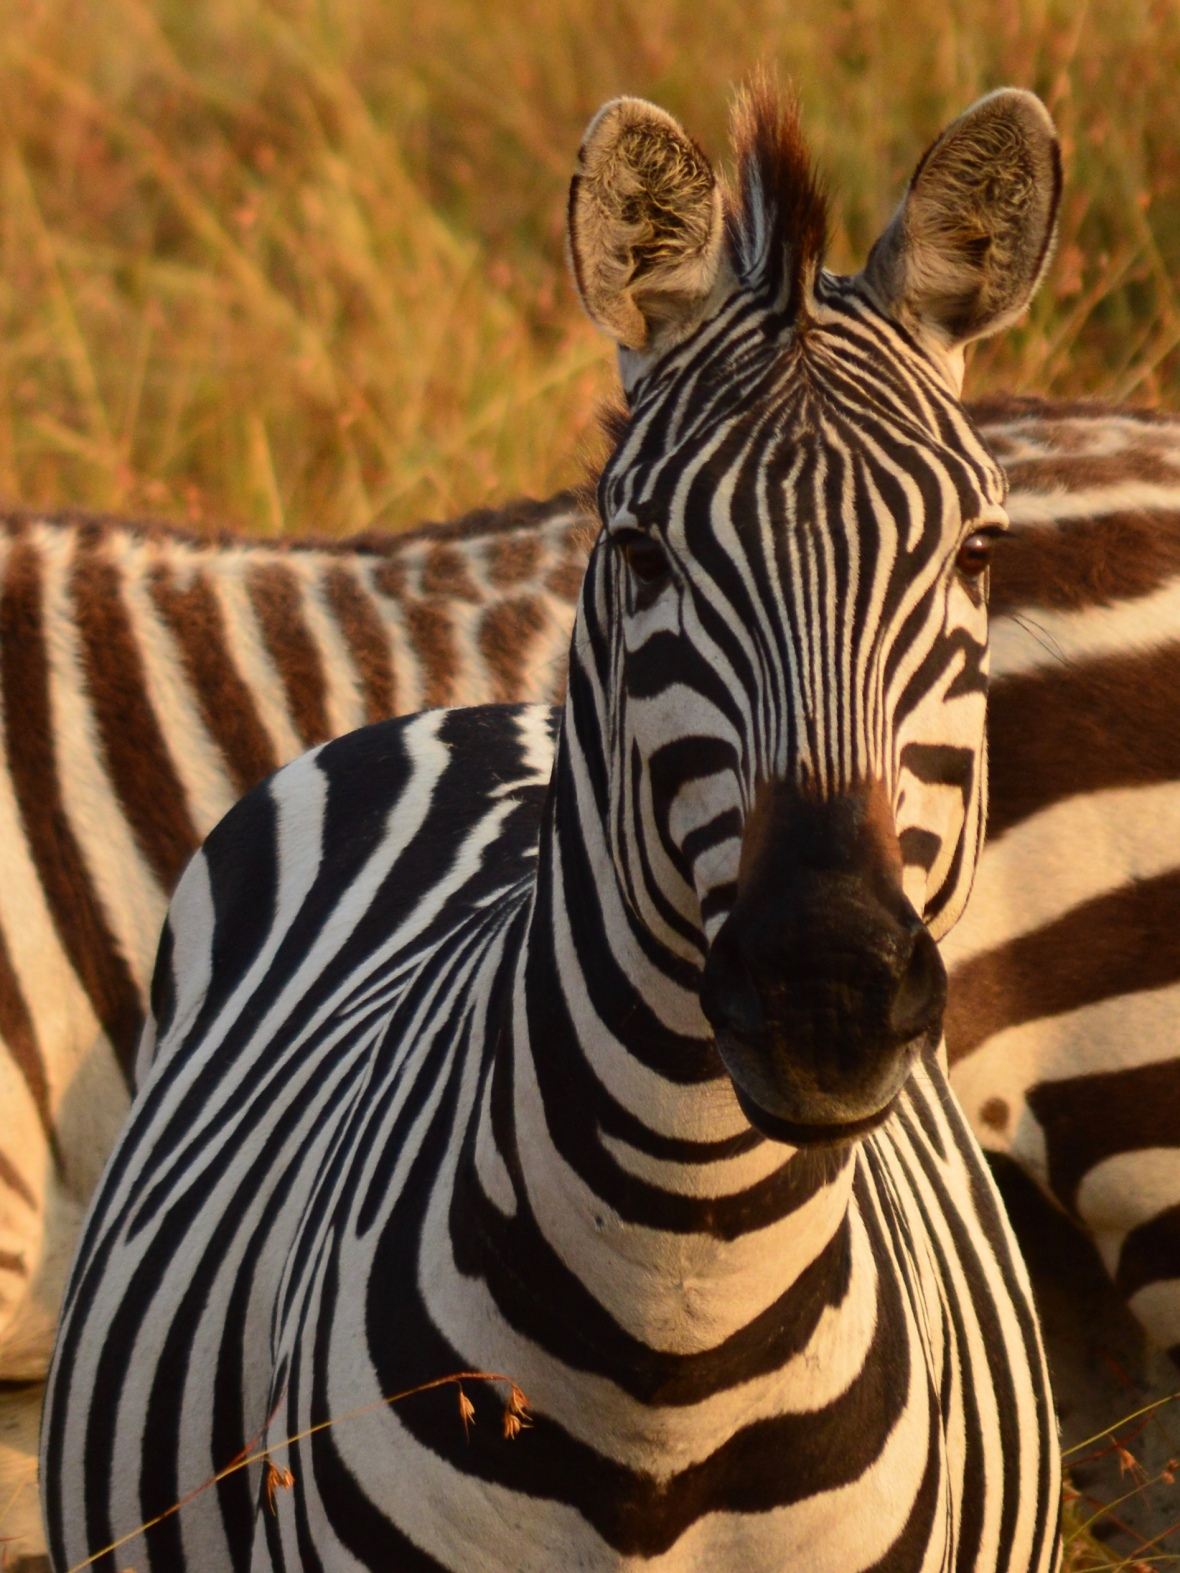 Tight shot of zebra staring at camera